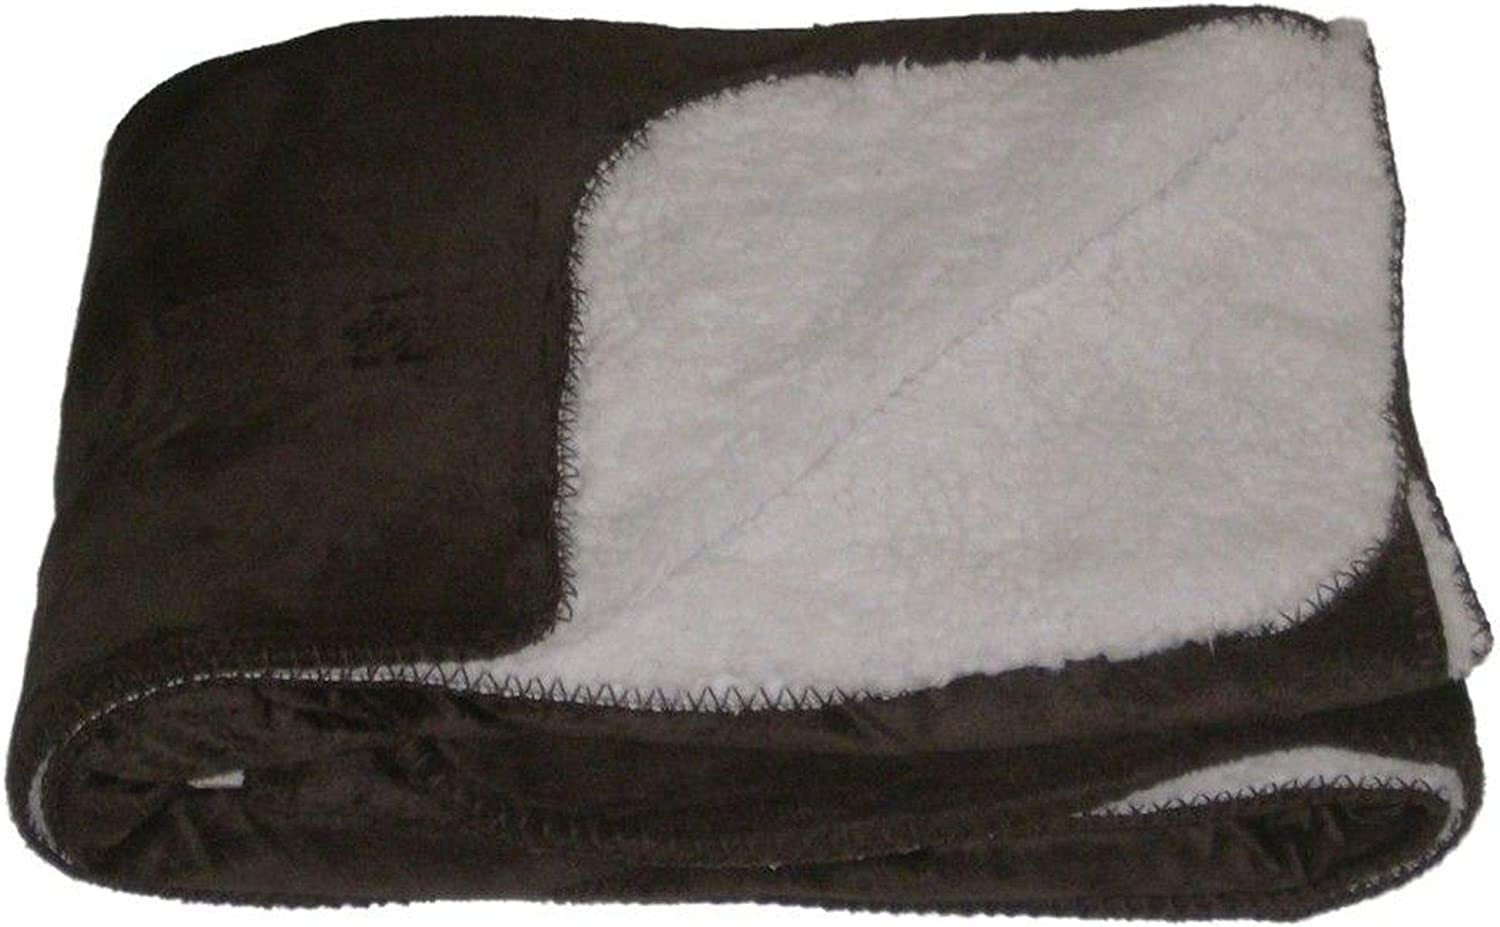 NorthCrest Home Sherpa Micromink Chocolate Brown Oversized Soft Throw Blanket